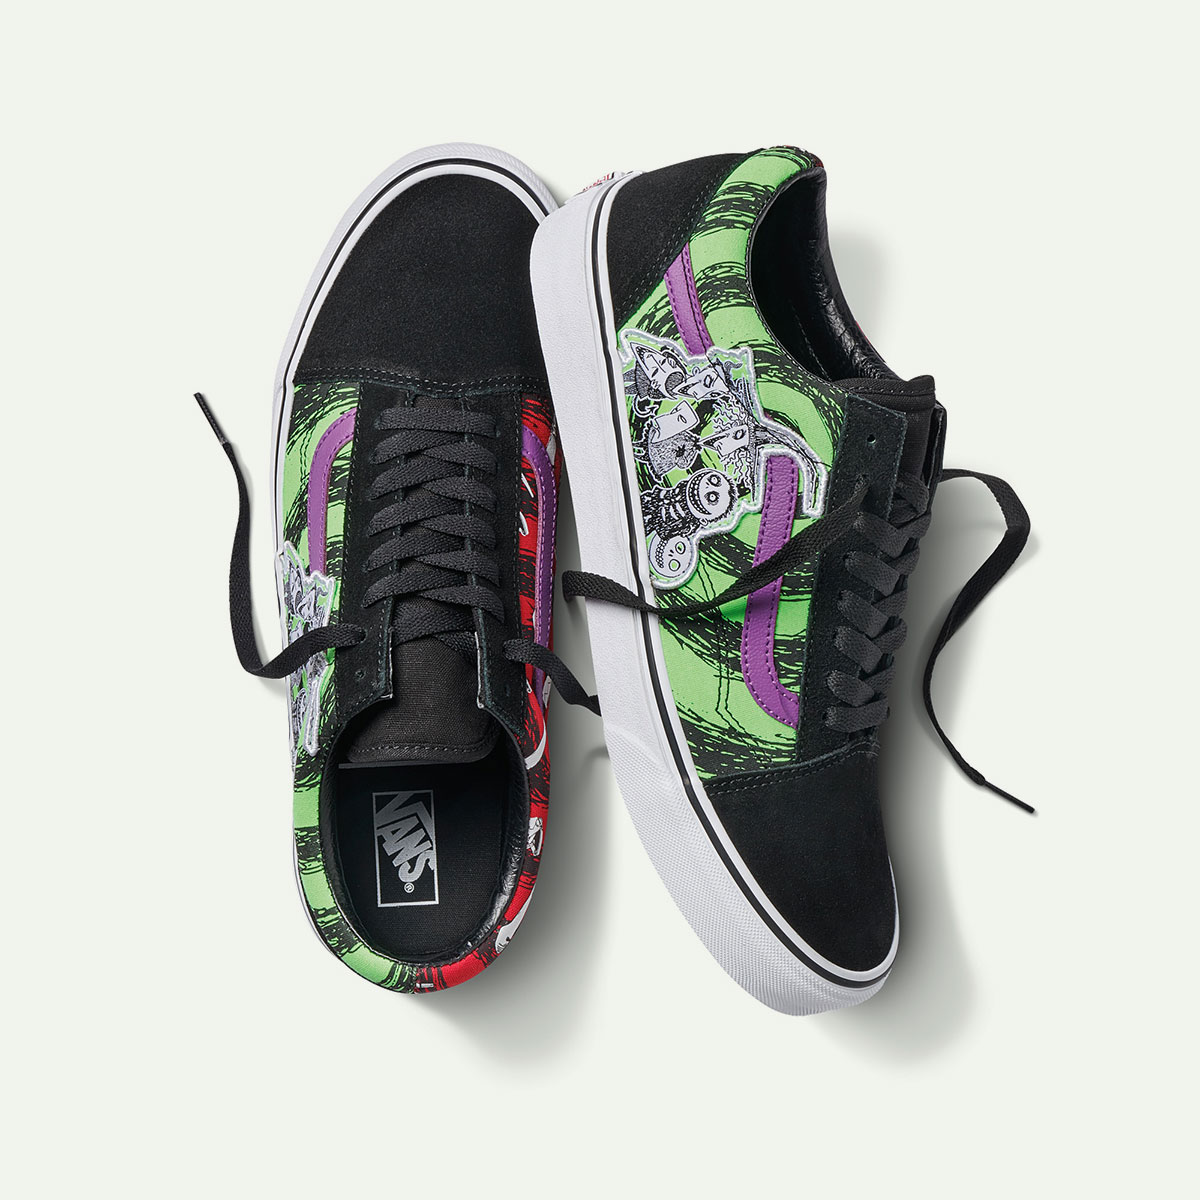 vans-the-nightmare-before-christmas-release-20191004